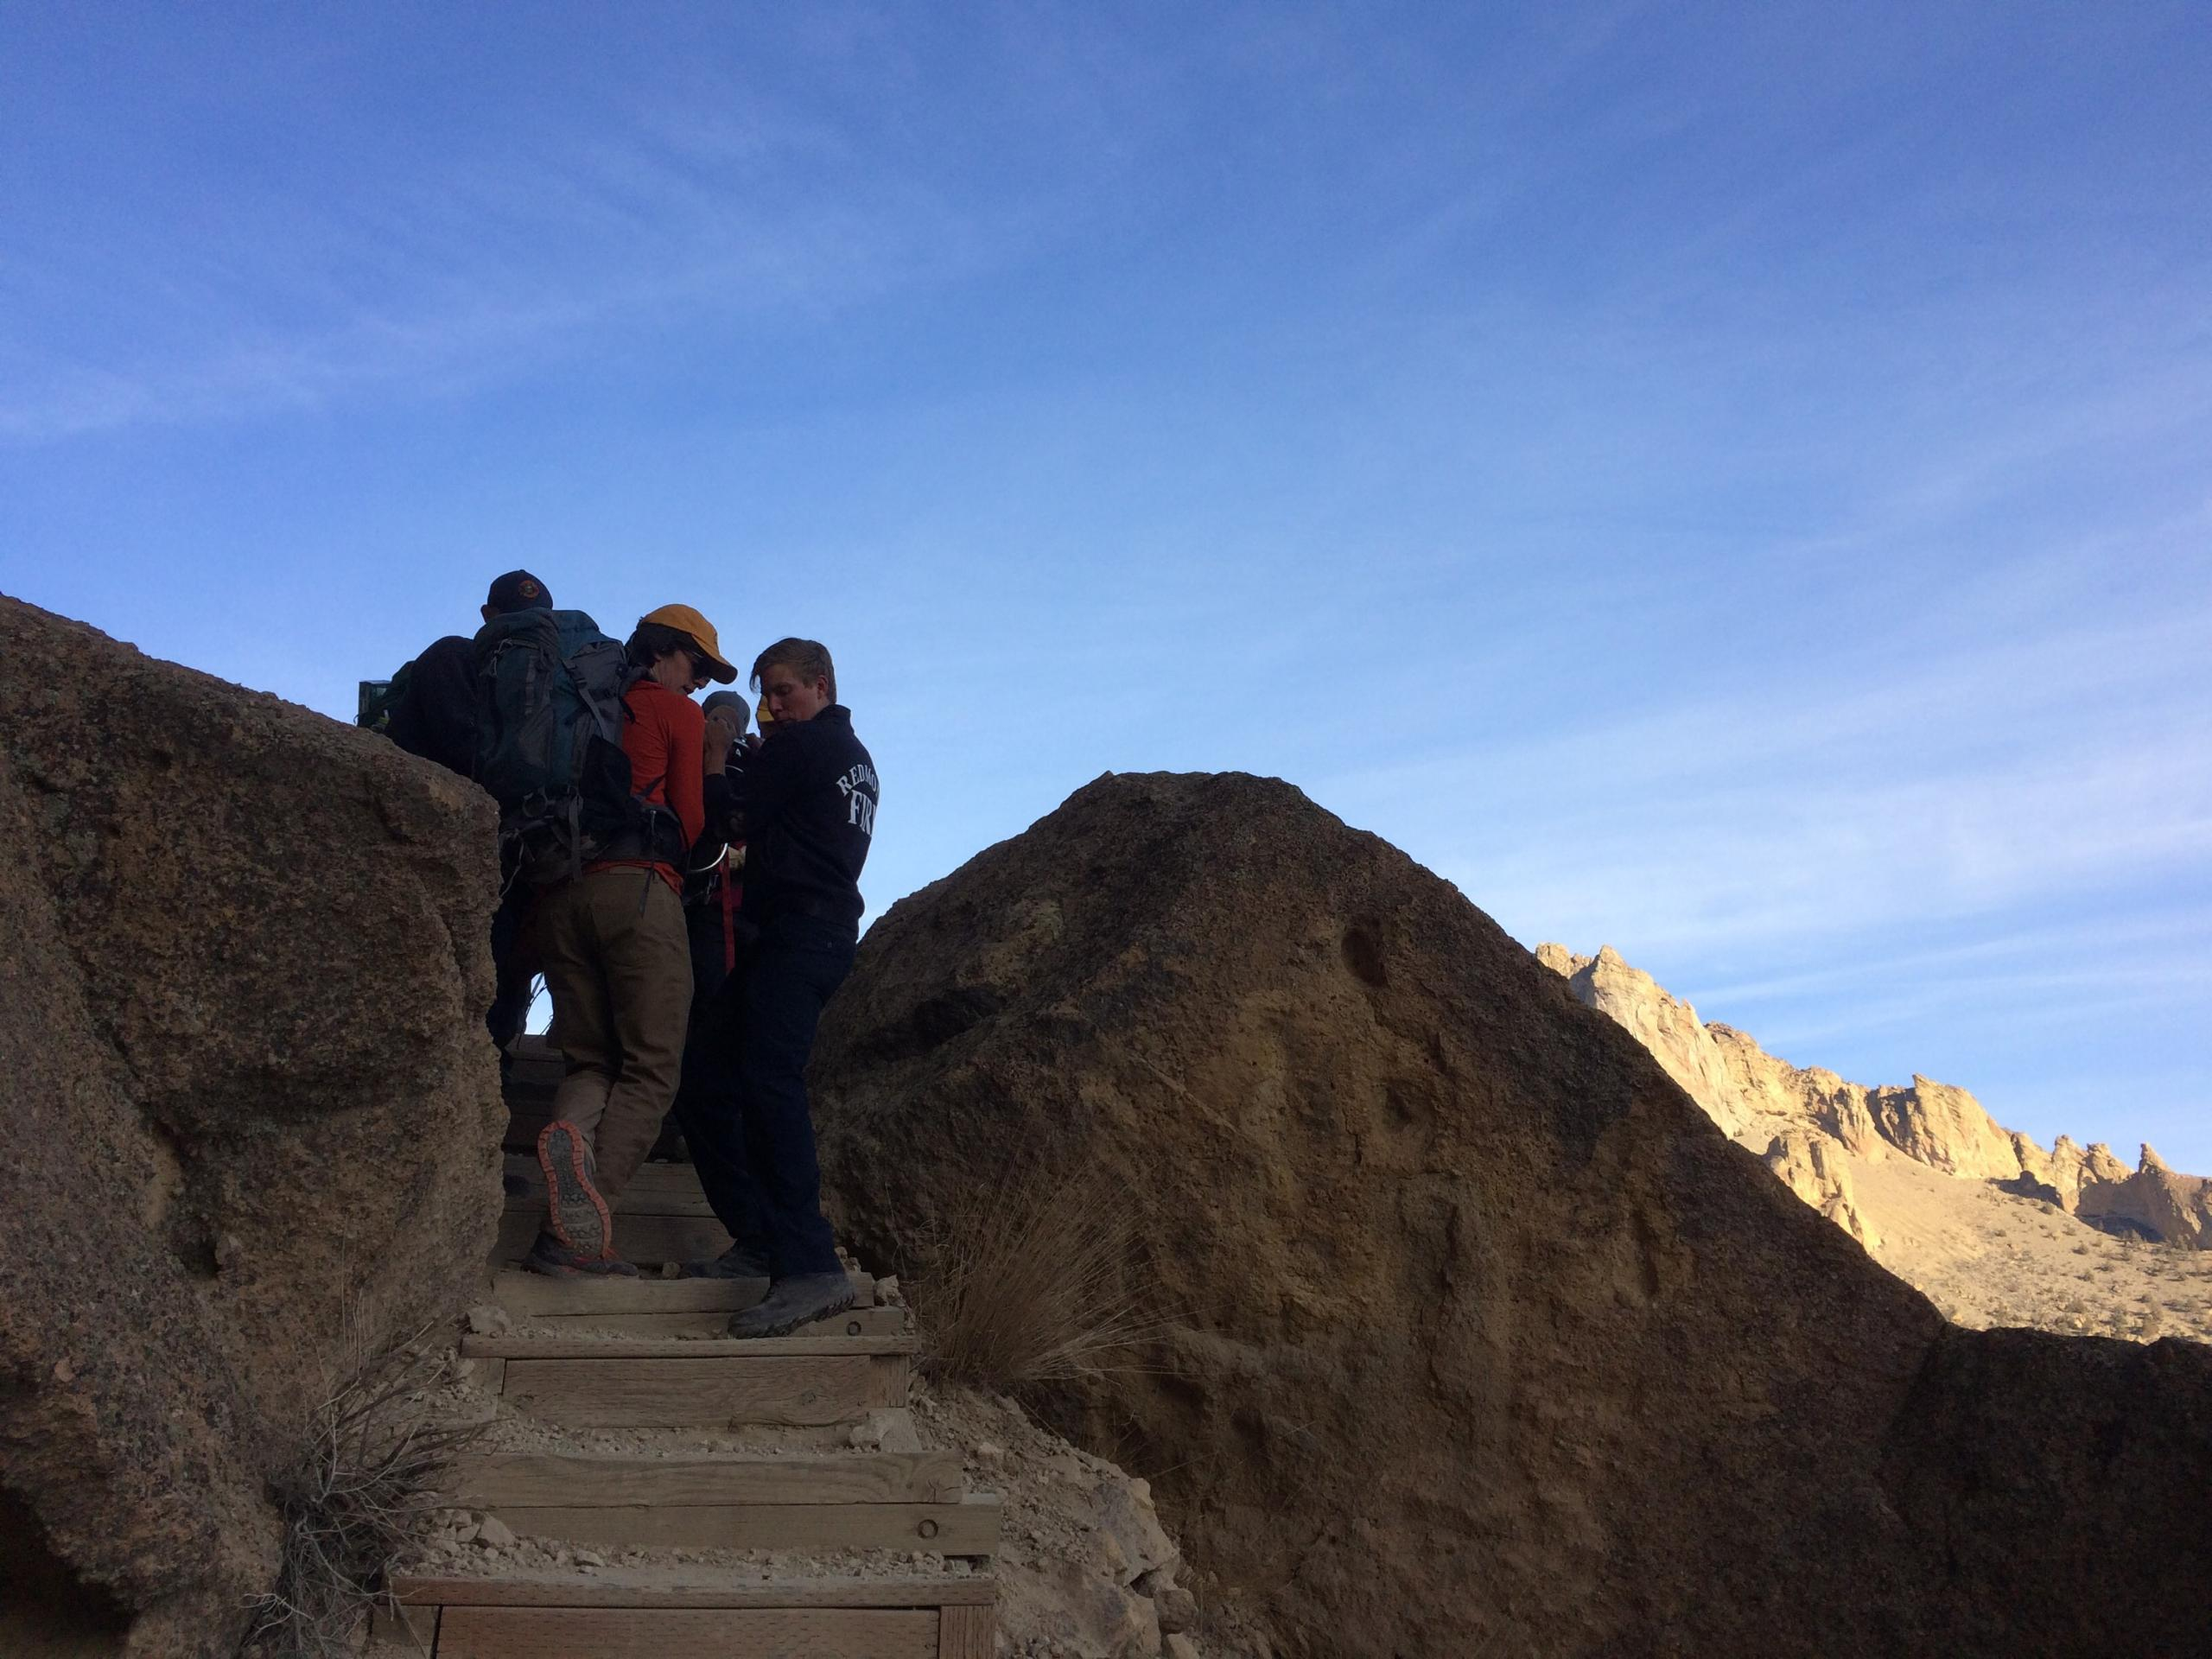 INJURED HIKER ASSISTED AT SMITH ROCK STATE PARK